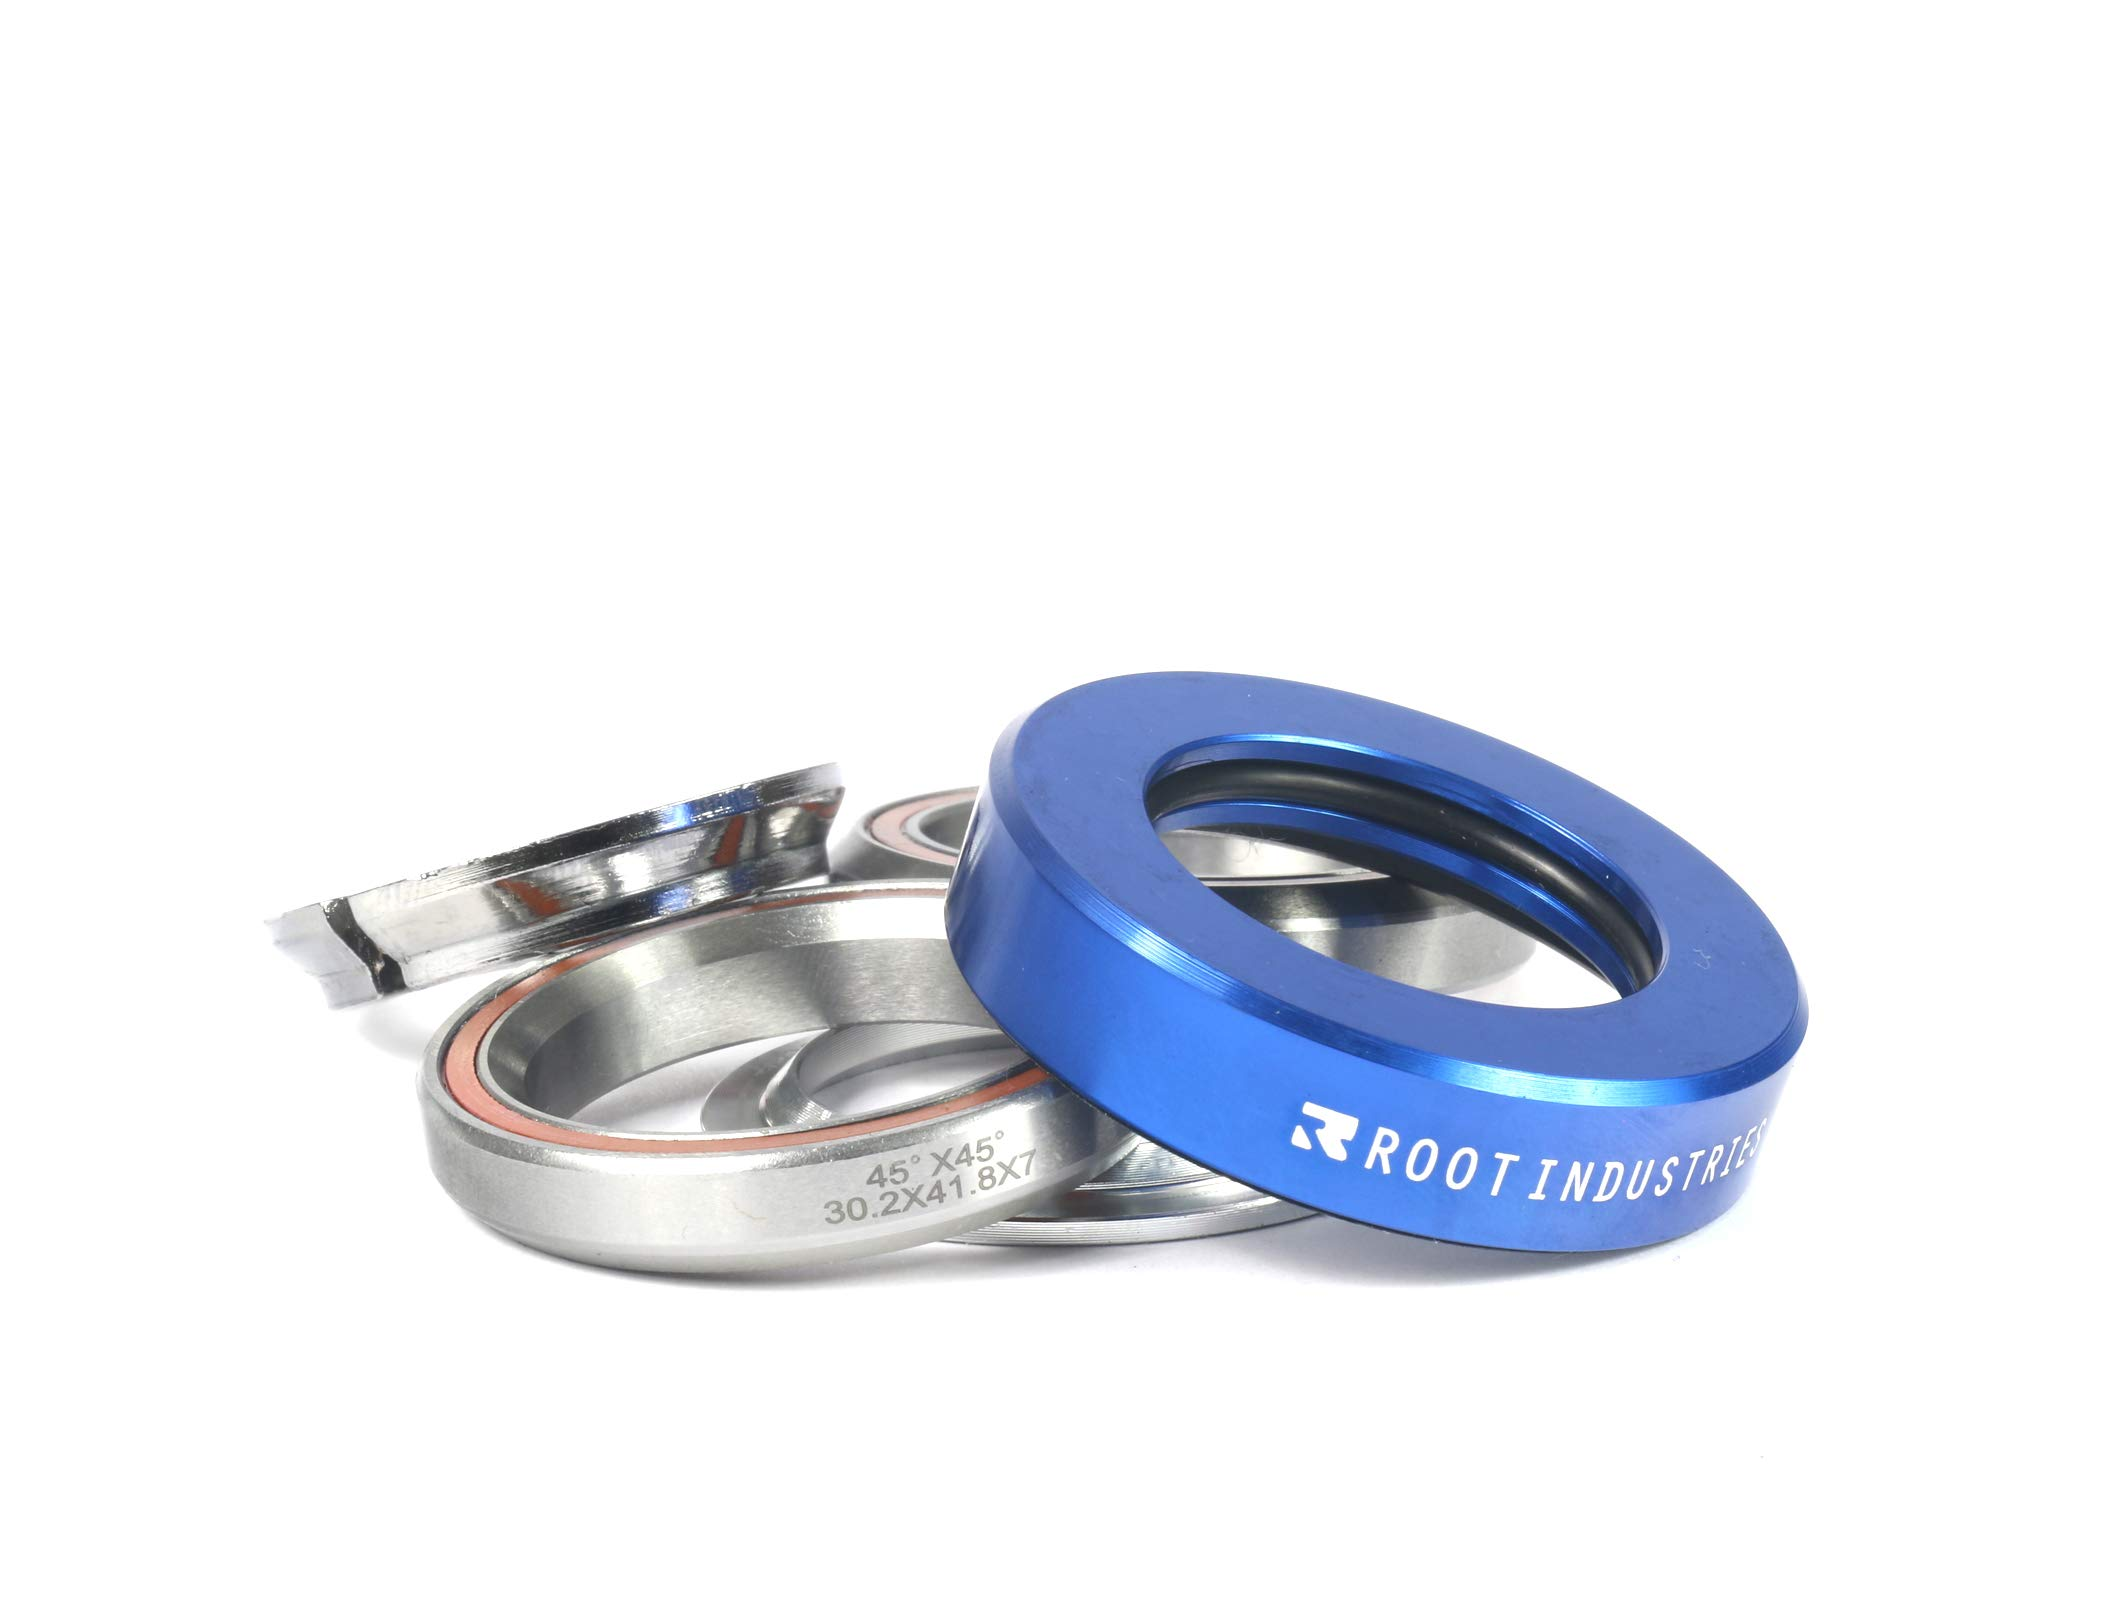 Root Industries AIR Headset - Trick/Stunt Scooter Headset - 1-⅛ Freestyle BMX/Scooter Professional Integrated Headset - Premium Color Options Sealed Fast (Blue)